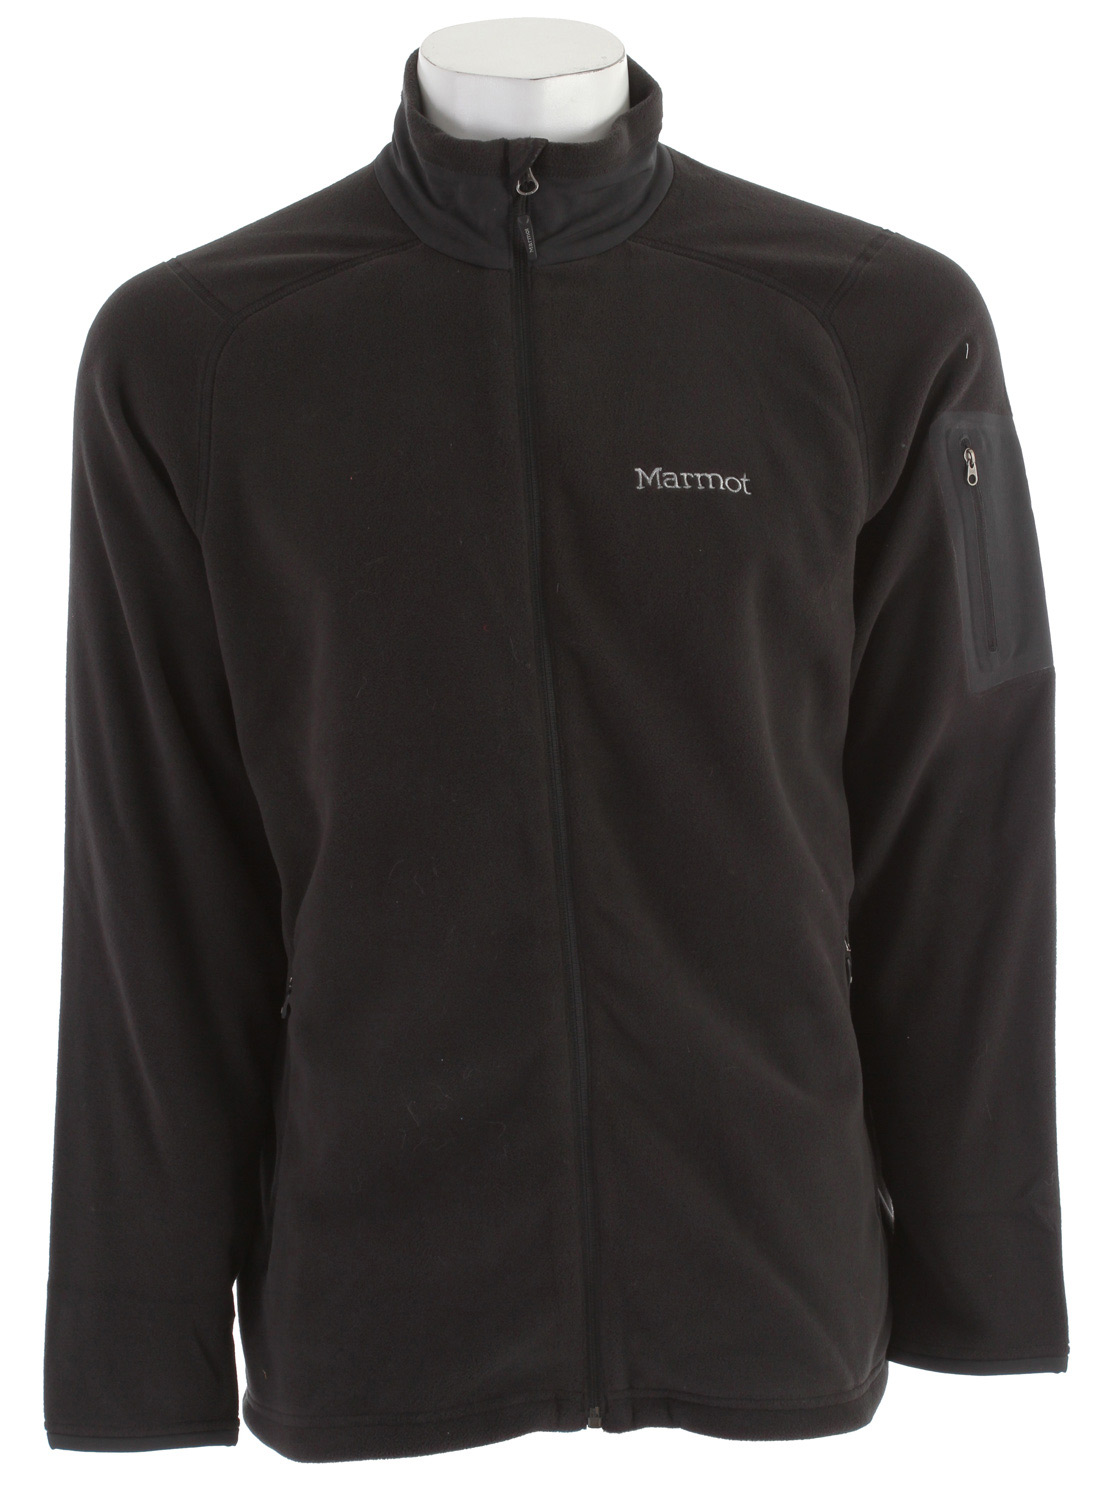 "The Reactor Half Zip is a clean, effective 100 wt. micro-fleece pullover that takes the nip out of chill weather or low thermostats. Polartec(R) Classic fabrics set the bar for lightweight warmth and breathability.Key Features of the Marmot Reactor Fleece: Weight 0lb 12.7oz (360g) Materials PolartecClassic 100 100% Polyester Micro Fleece 4.6 oz/yd Polartec Classic 100 Micro Flat Lock Construction Zippered Handwarmer Pockets Bonded Zippered Sleeve Pocket Wind Flap Behind Front Zipper with Chin Guard Elastic Draw Cord Hem 27 3/4"" Center Back Length for Size Medium - $95.00"